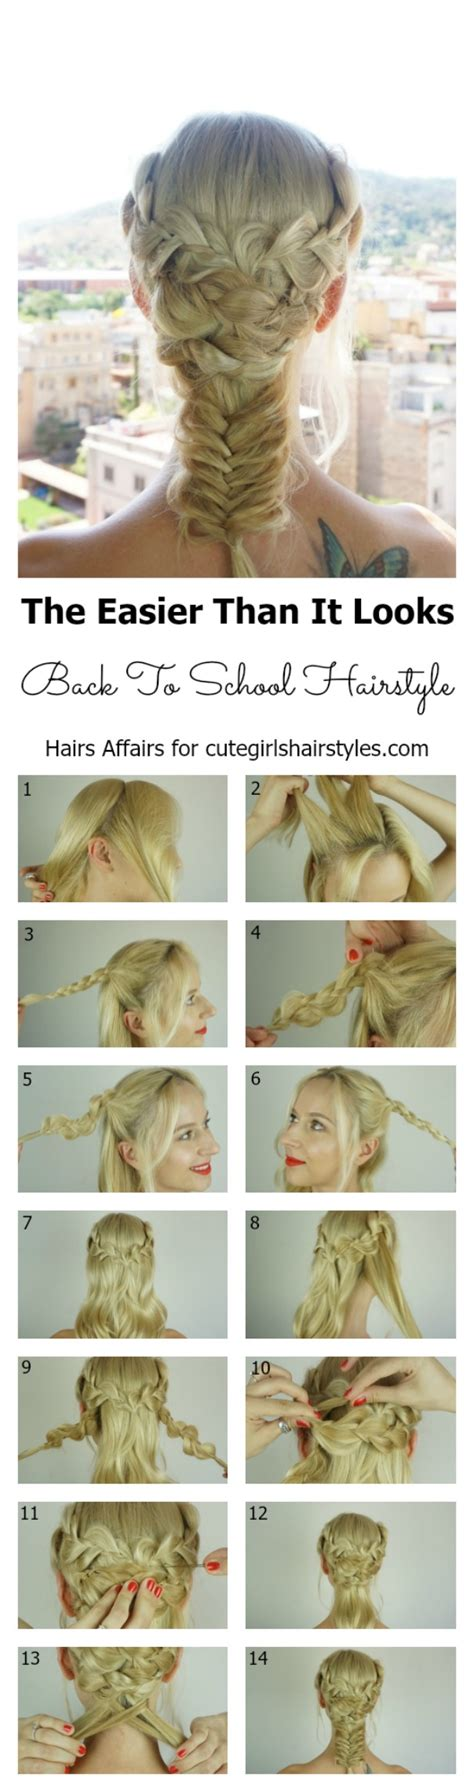 hairstyles for easy back to school easy back to school hairstyle hairstyles